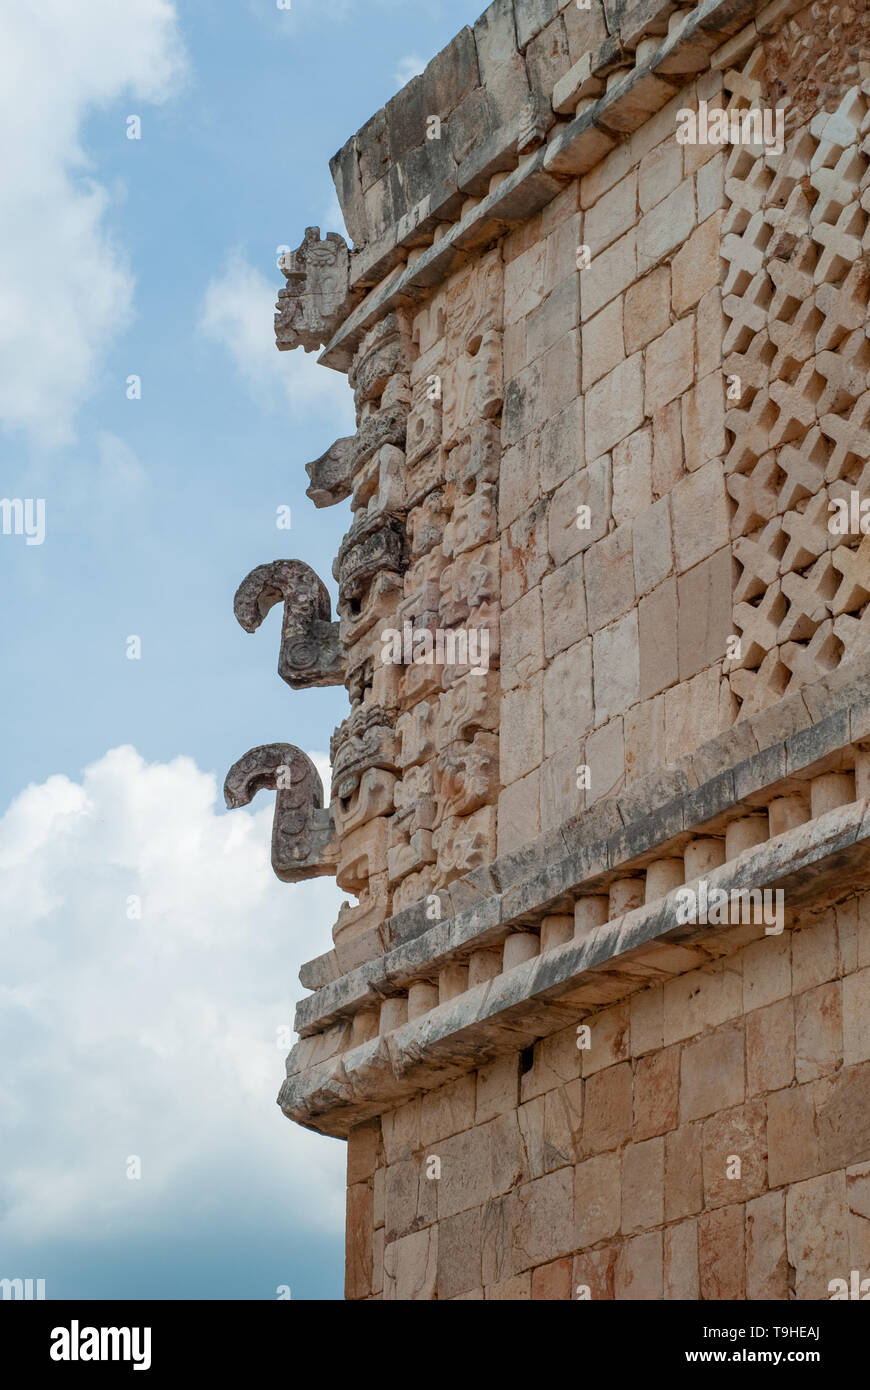 Decorations of a Mayan temple, symbolizing elephants, of the archaeological area of Ek Balam, in the Yucatan peninsula - Stock Image